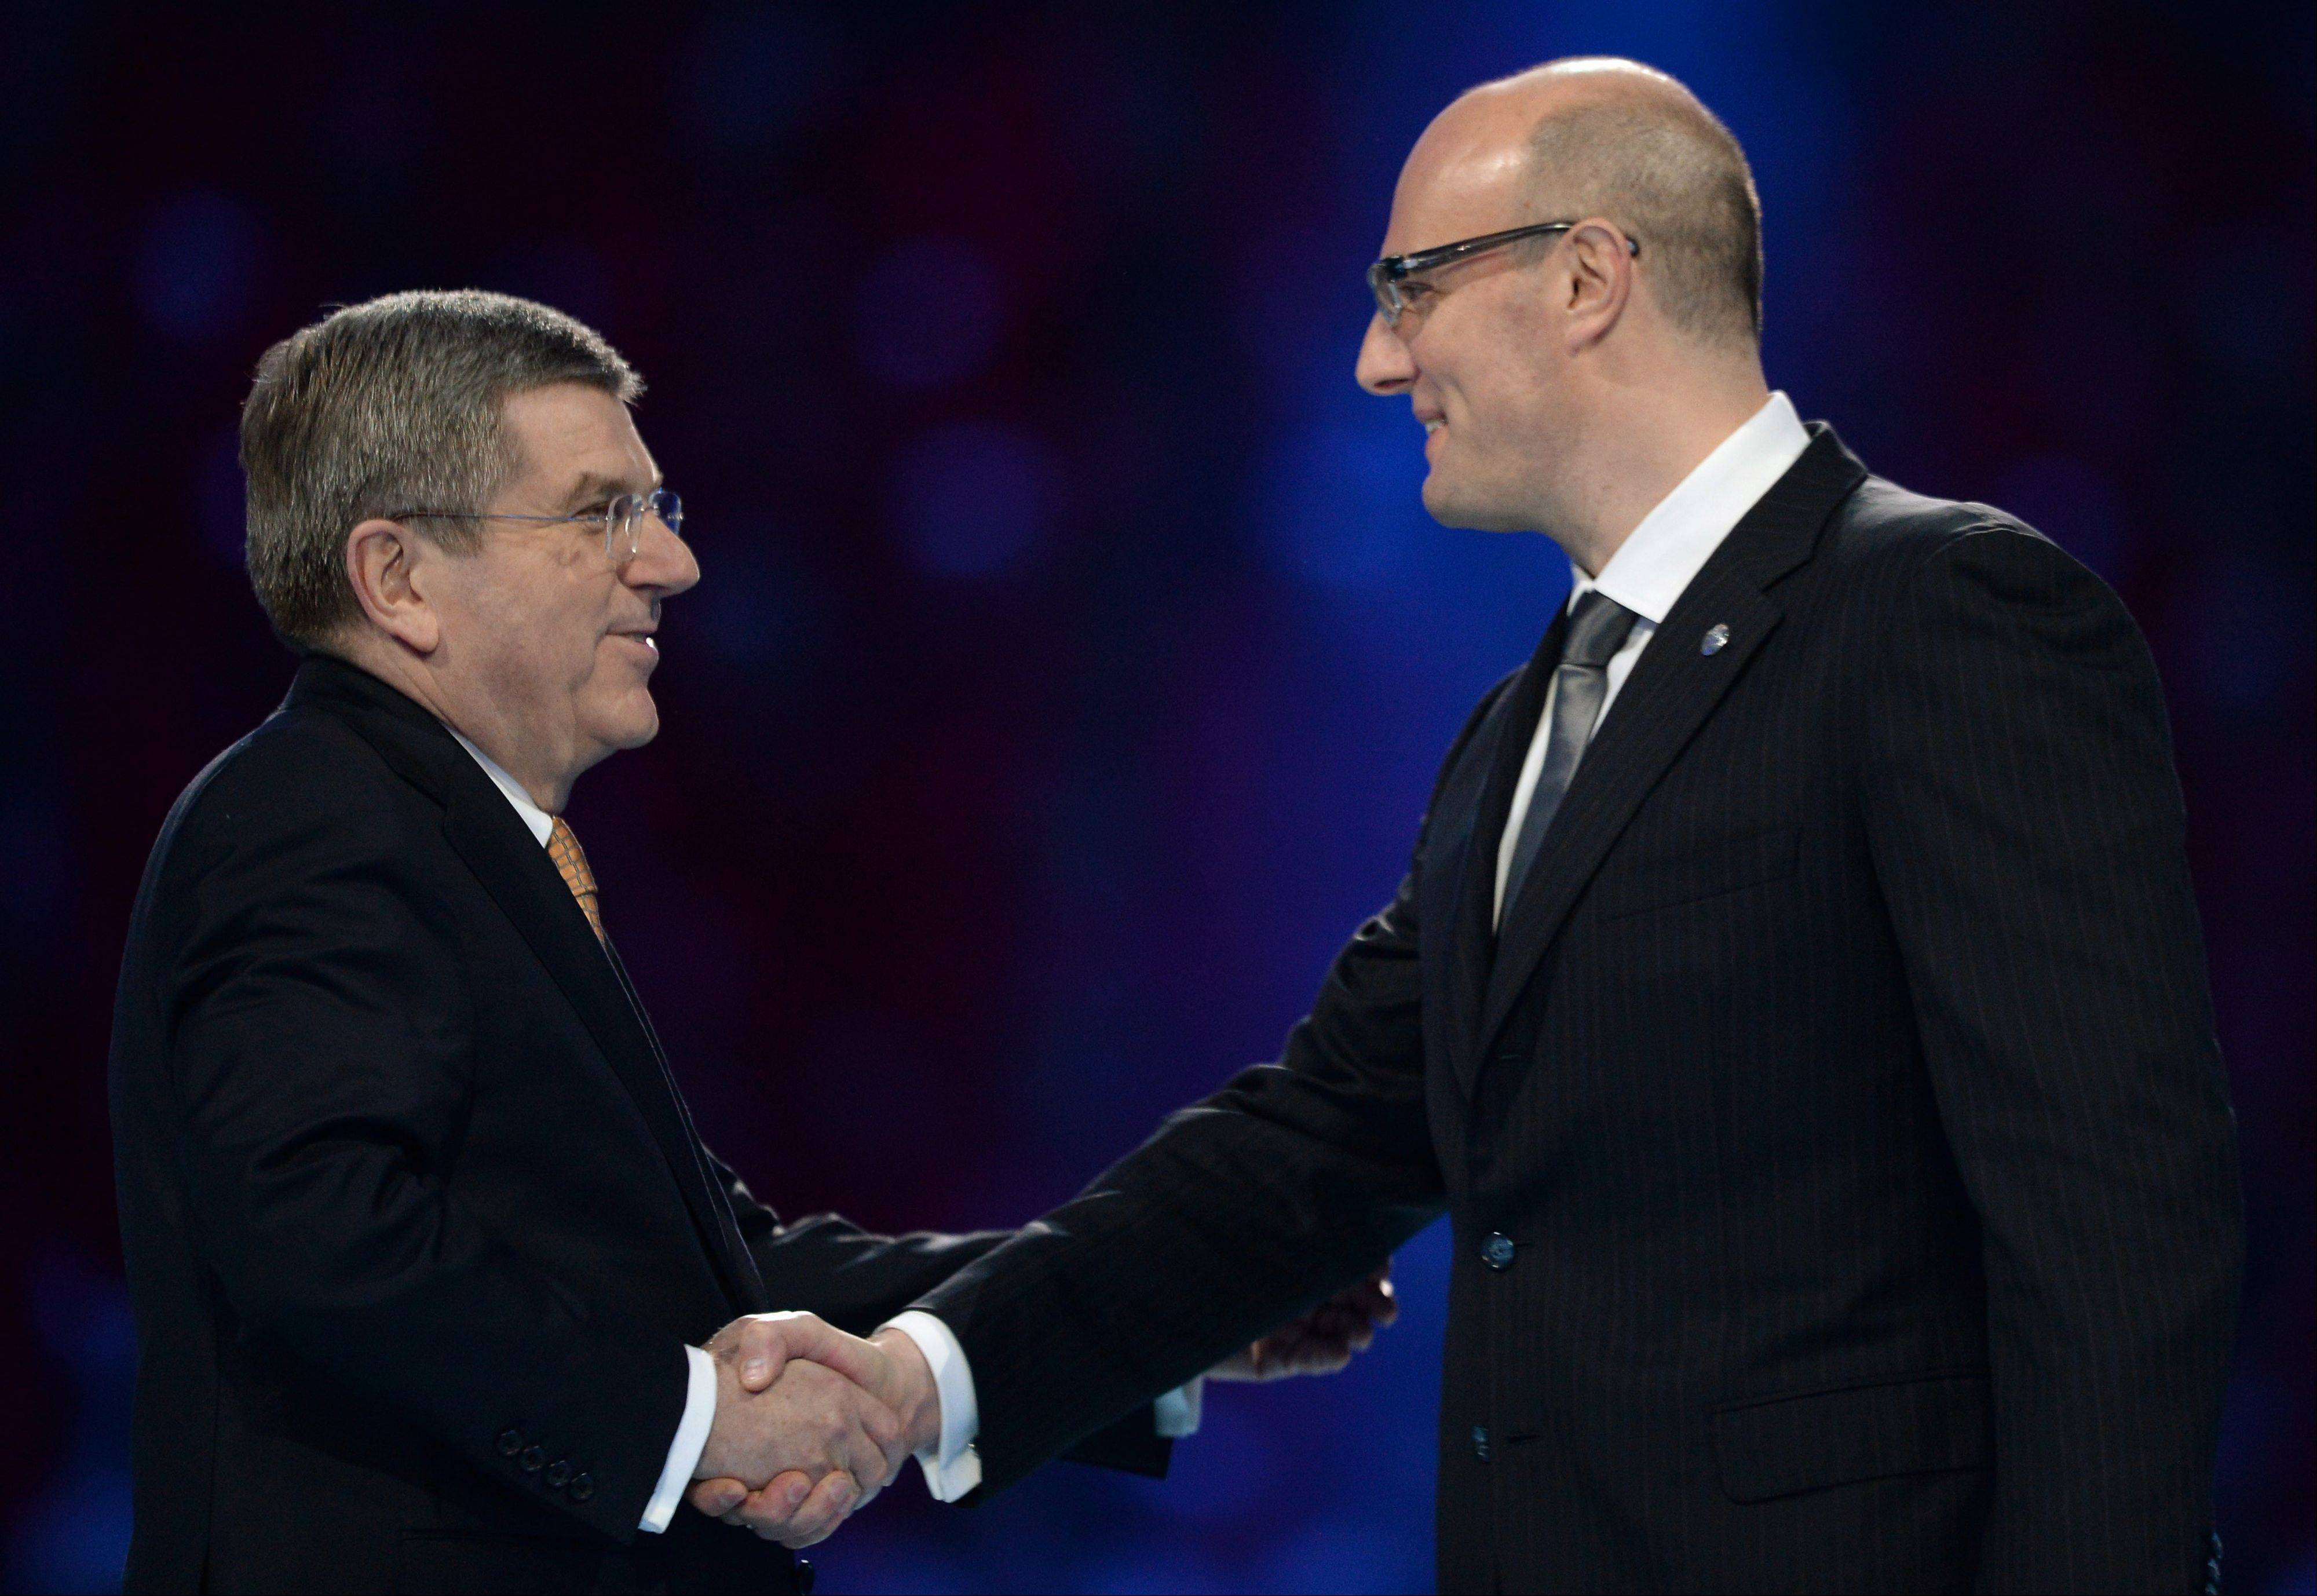 International Olympic Committee President Thomas Bach, left, shakes hands with President and CEO of the Sochi 2014 organizing committee Dmitry Chernyshenko during the opening ceremony.